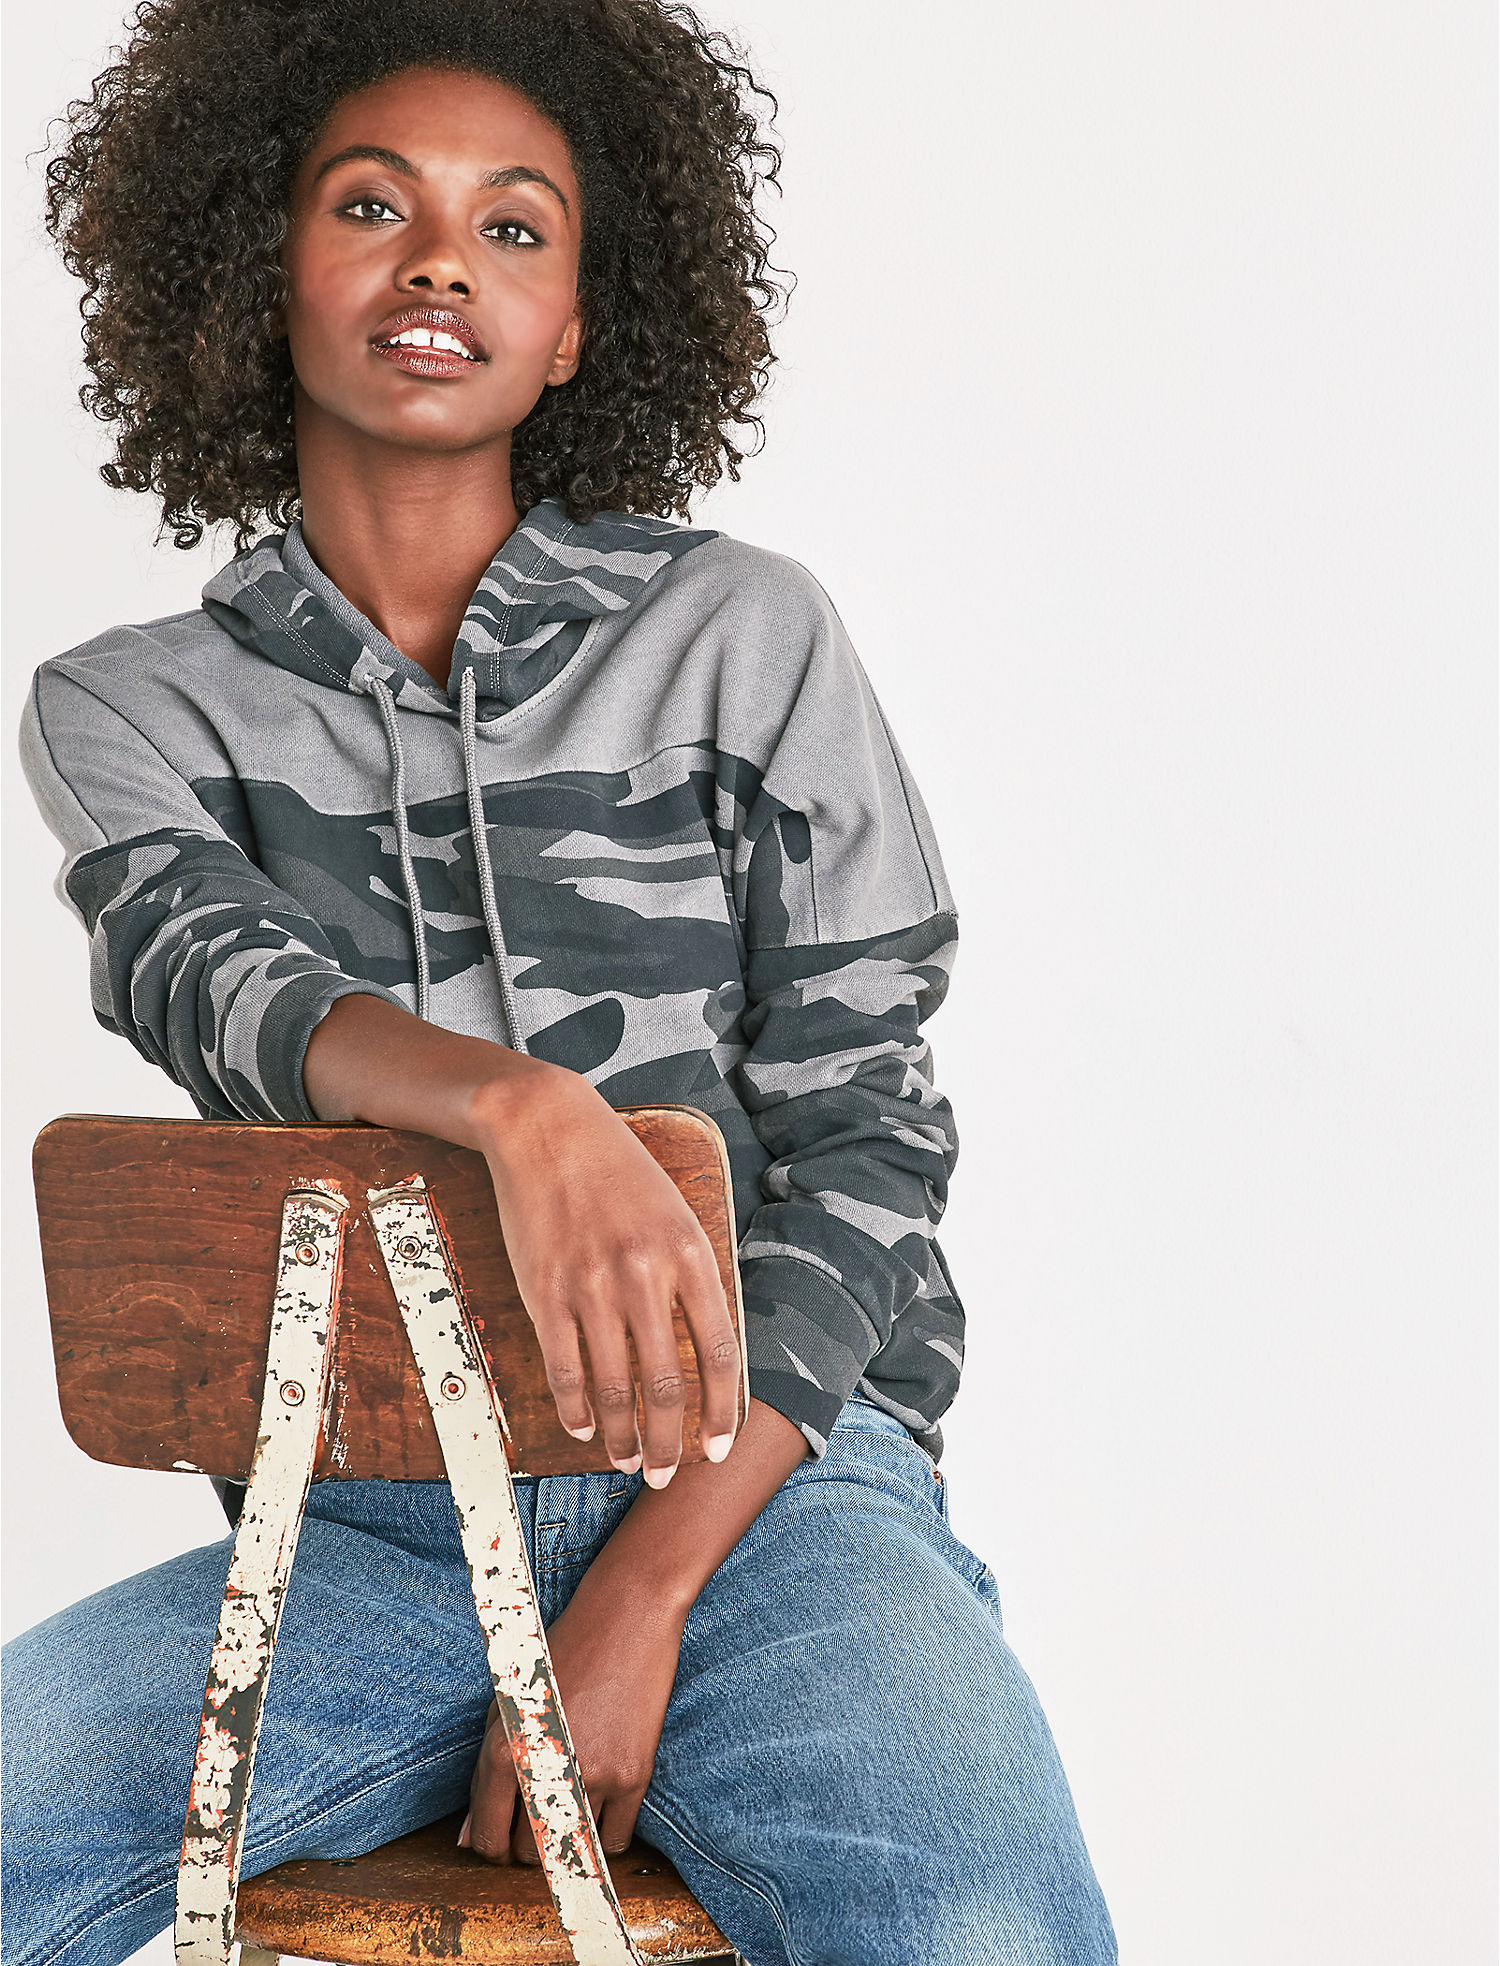 7275911fe01 Tomboy Jumpsuit With Embroidery at Lucky Brand Jeans in Studio City ...